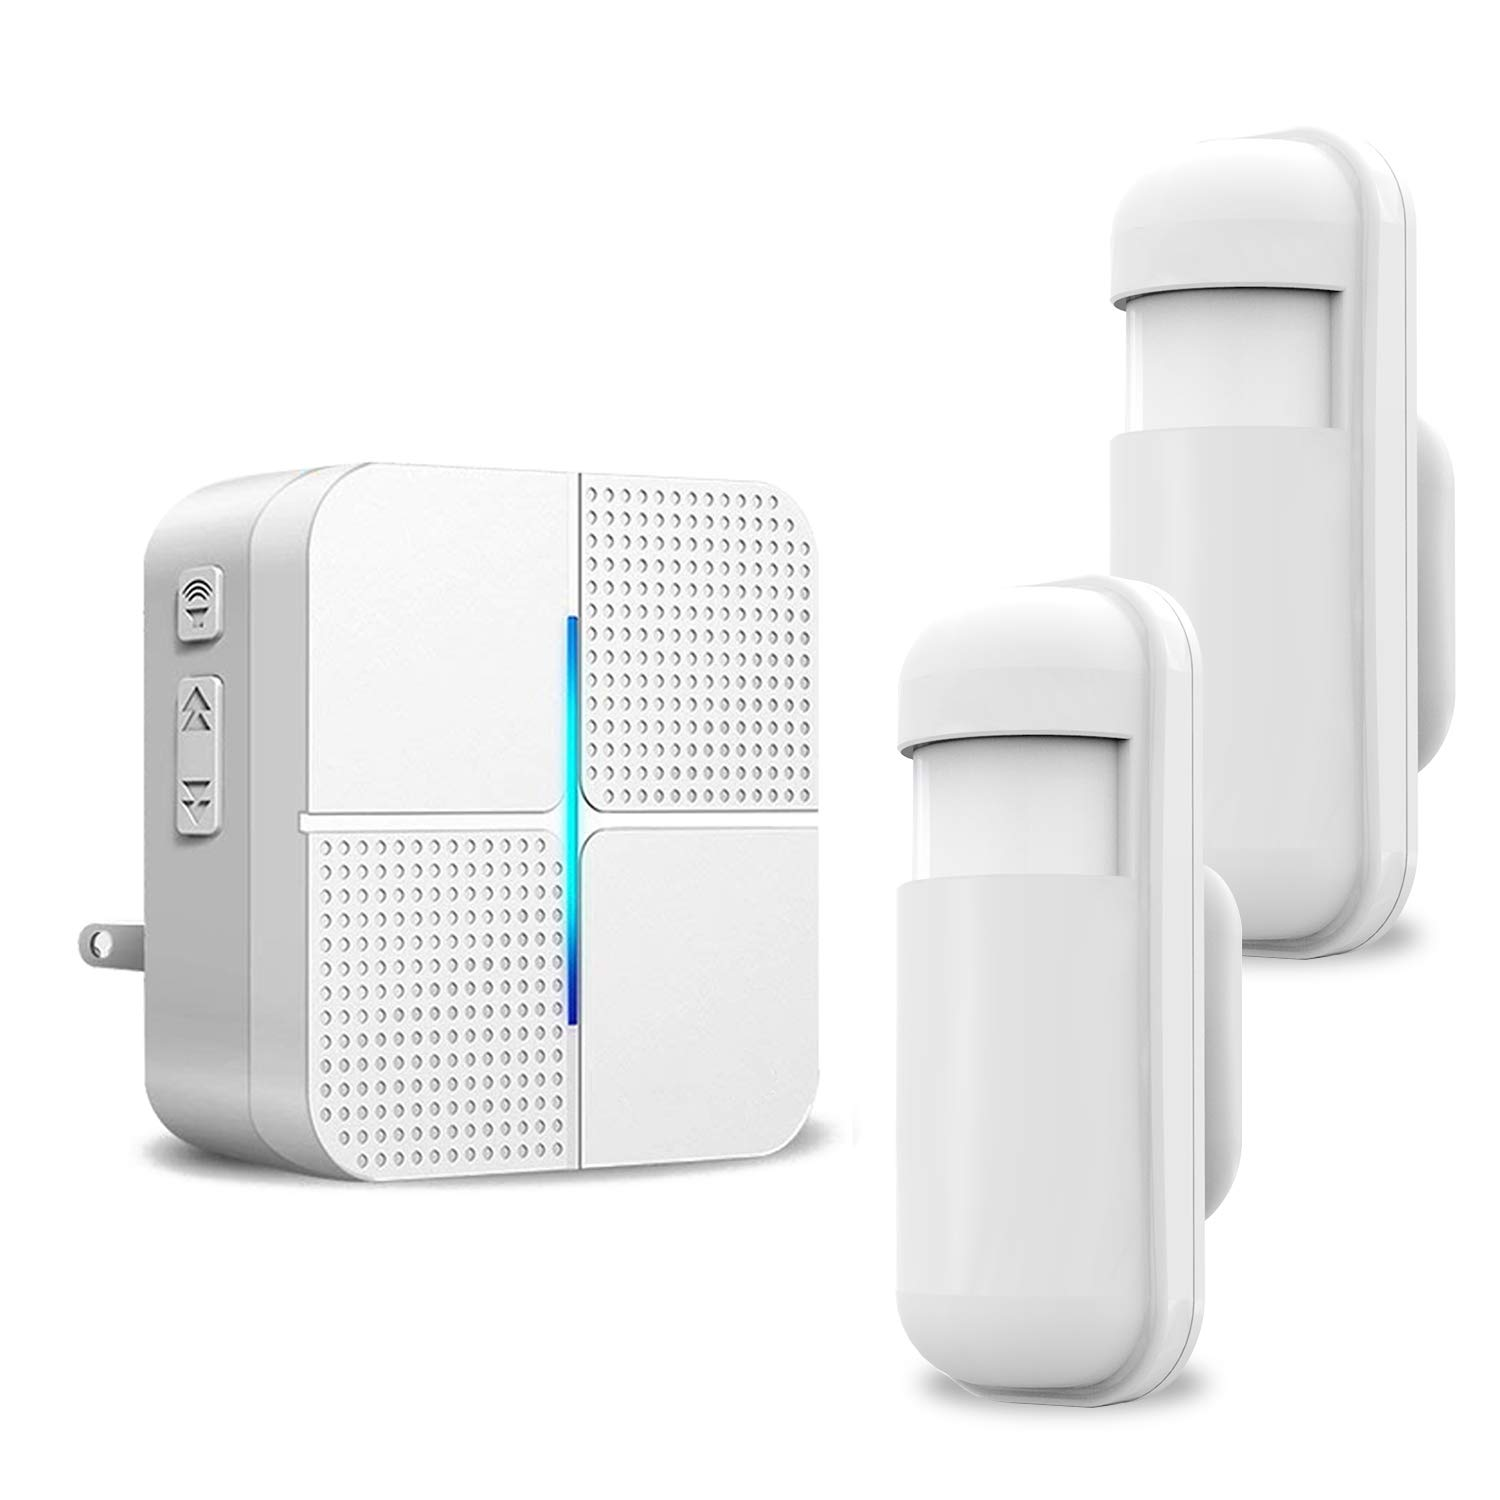 Motion Sensor Driveway Alarm Detector – JOYSAE Wireless Security Driveway Chimes Home Security Alert System Infrared Protect Home Store Safety 1-2